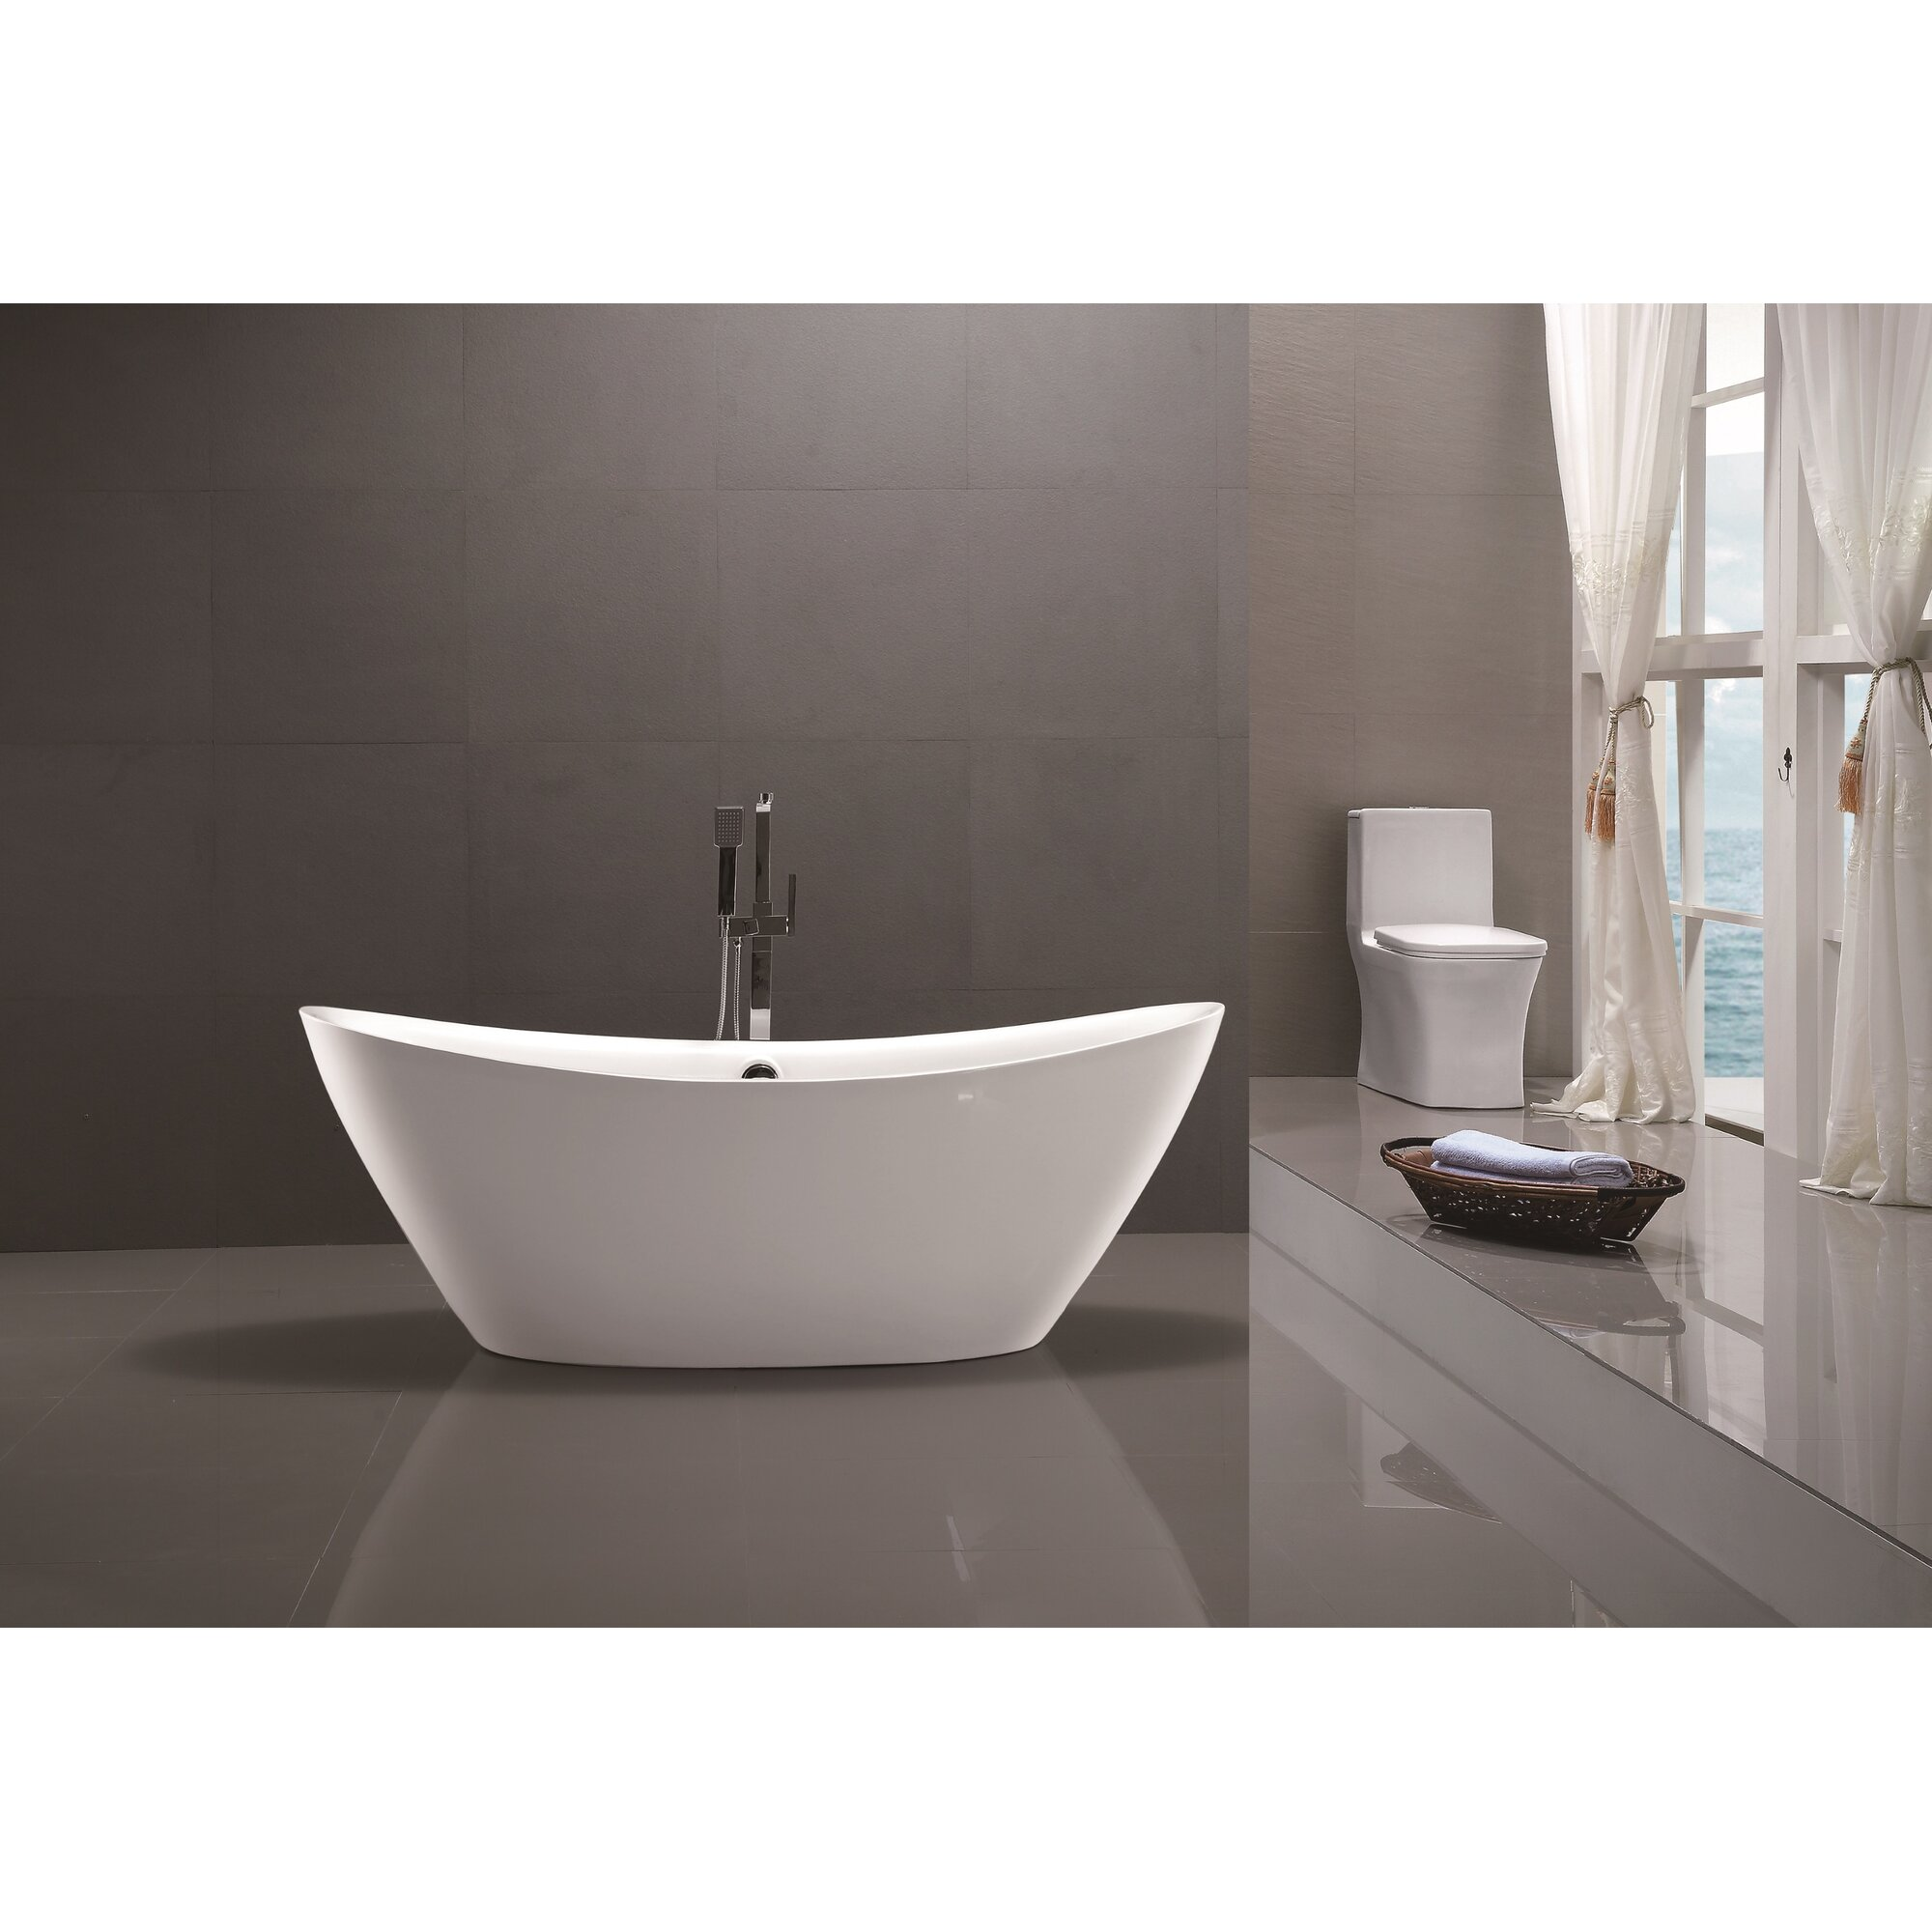 Vanity Art 71 Quot X 34 Quot Freestanding Soaking Bathtub